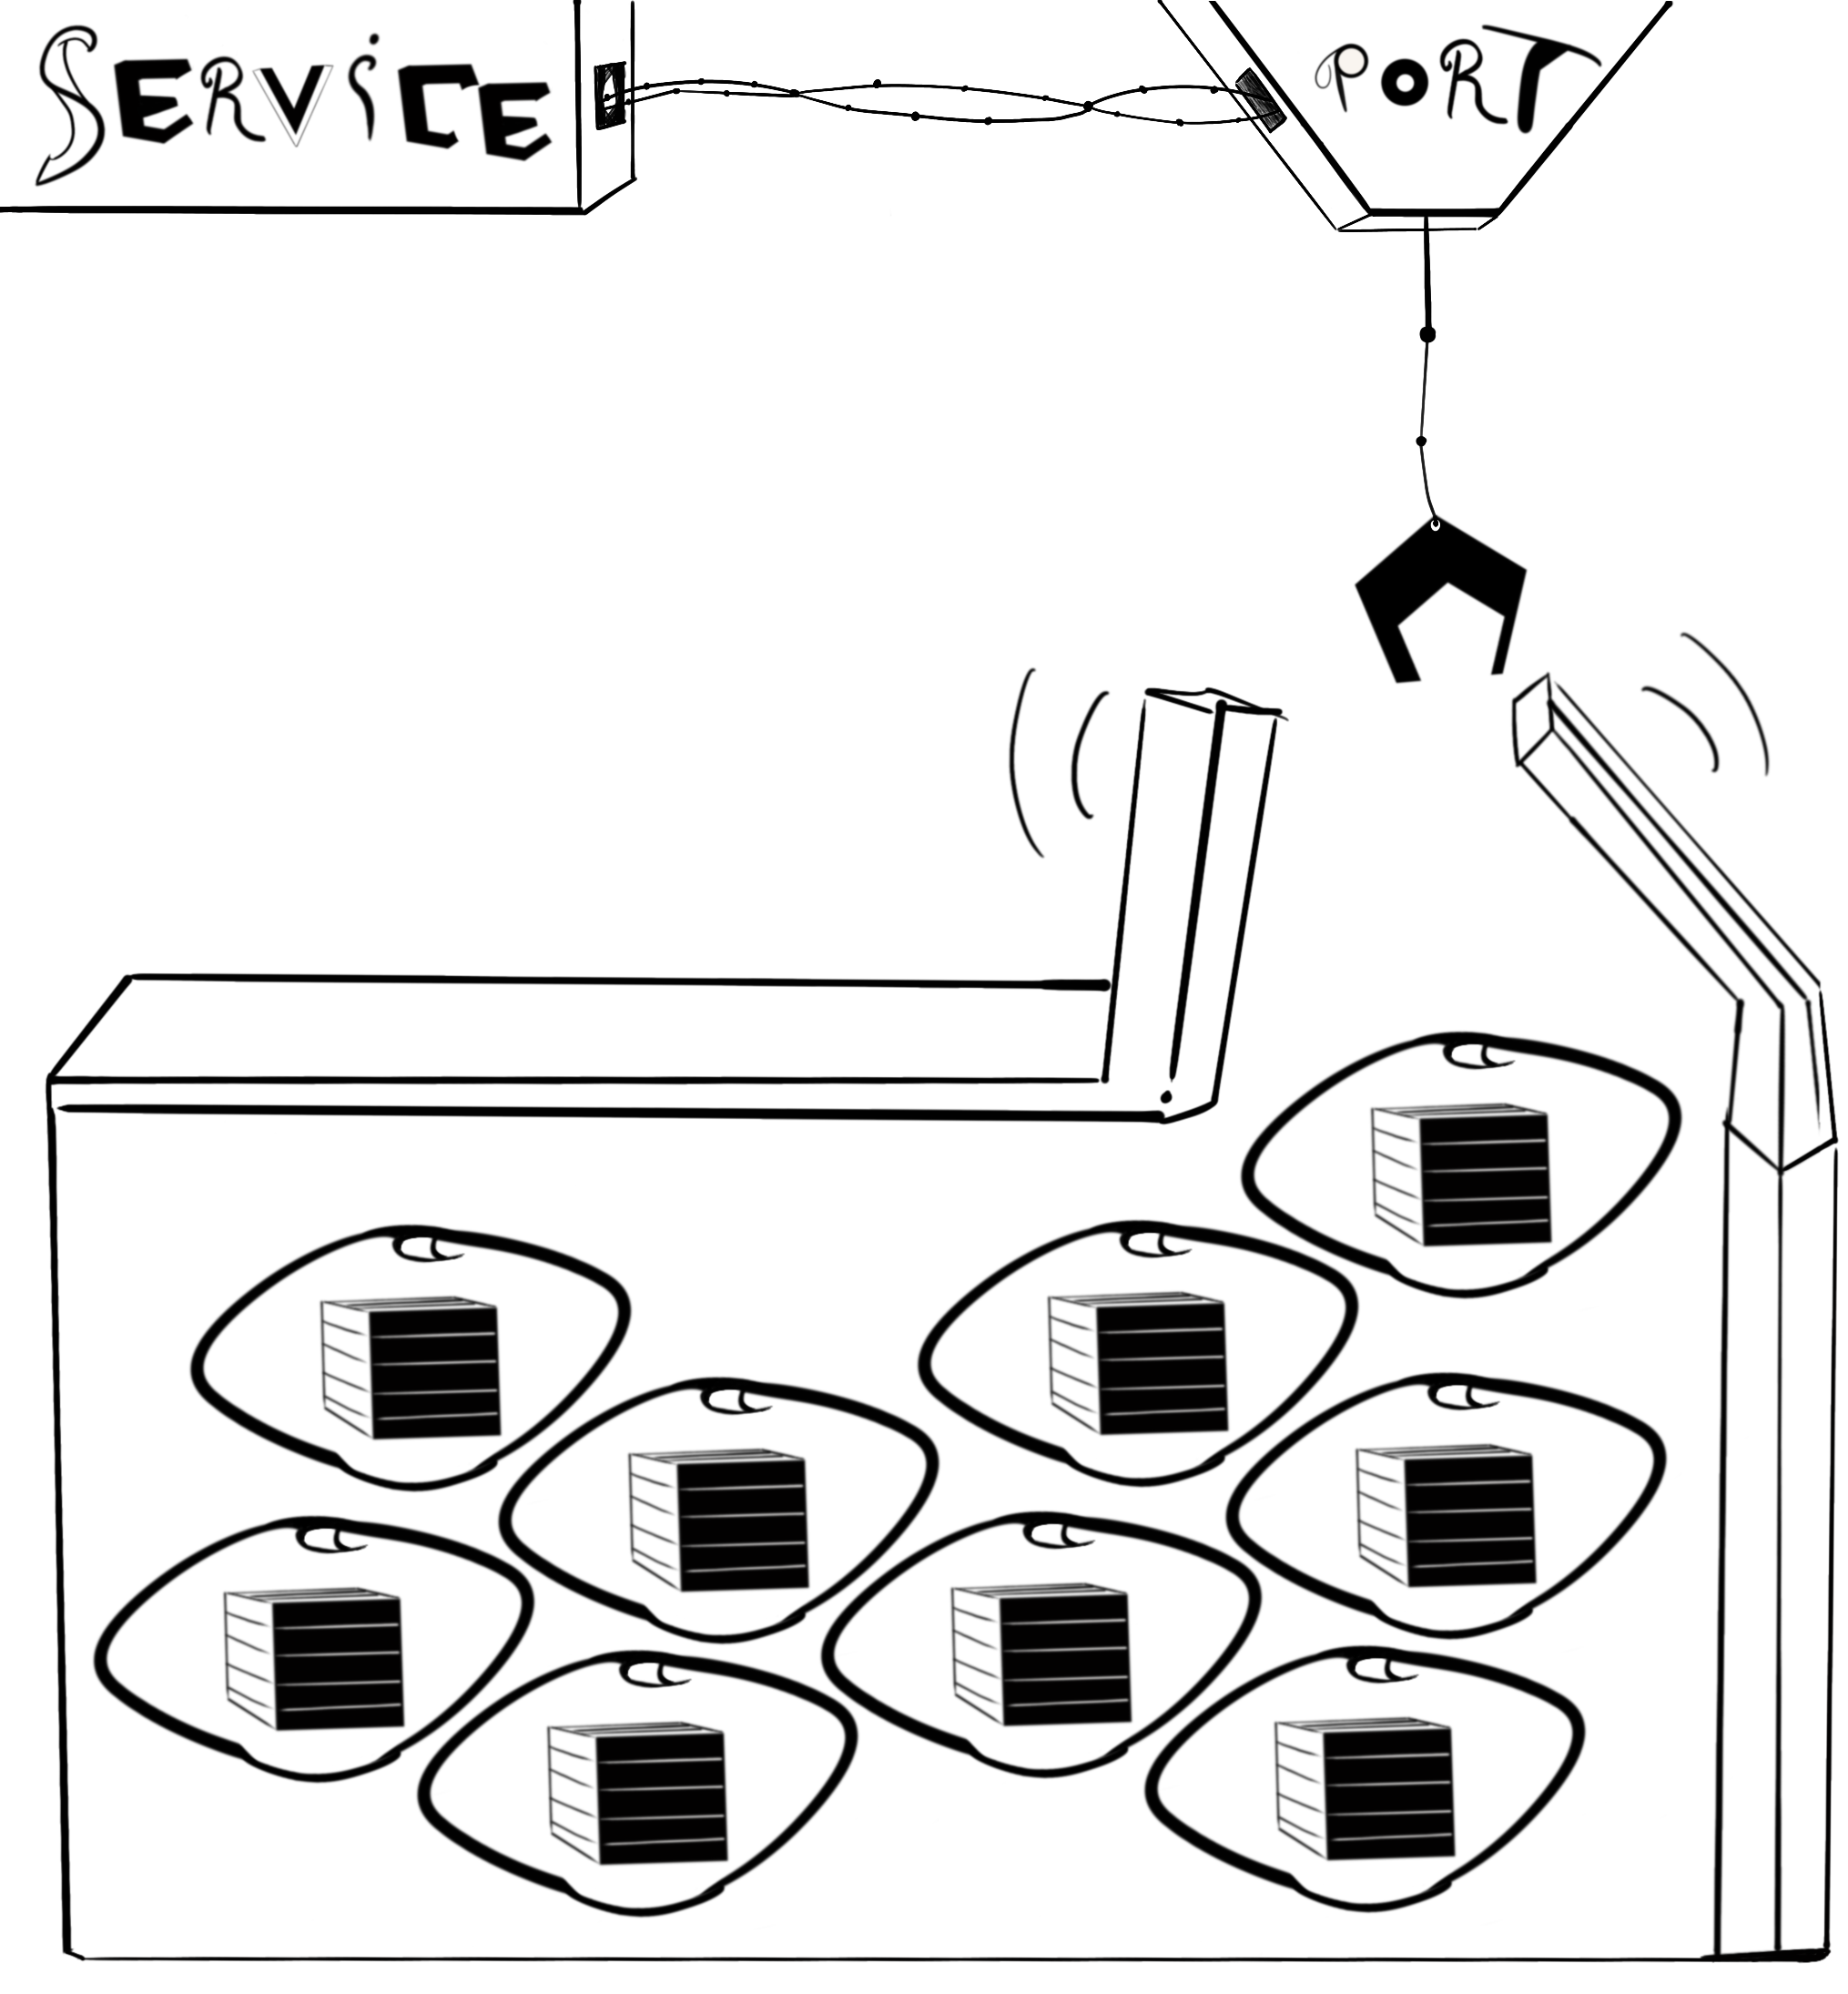 services_kubernetes_image_s.png